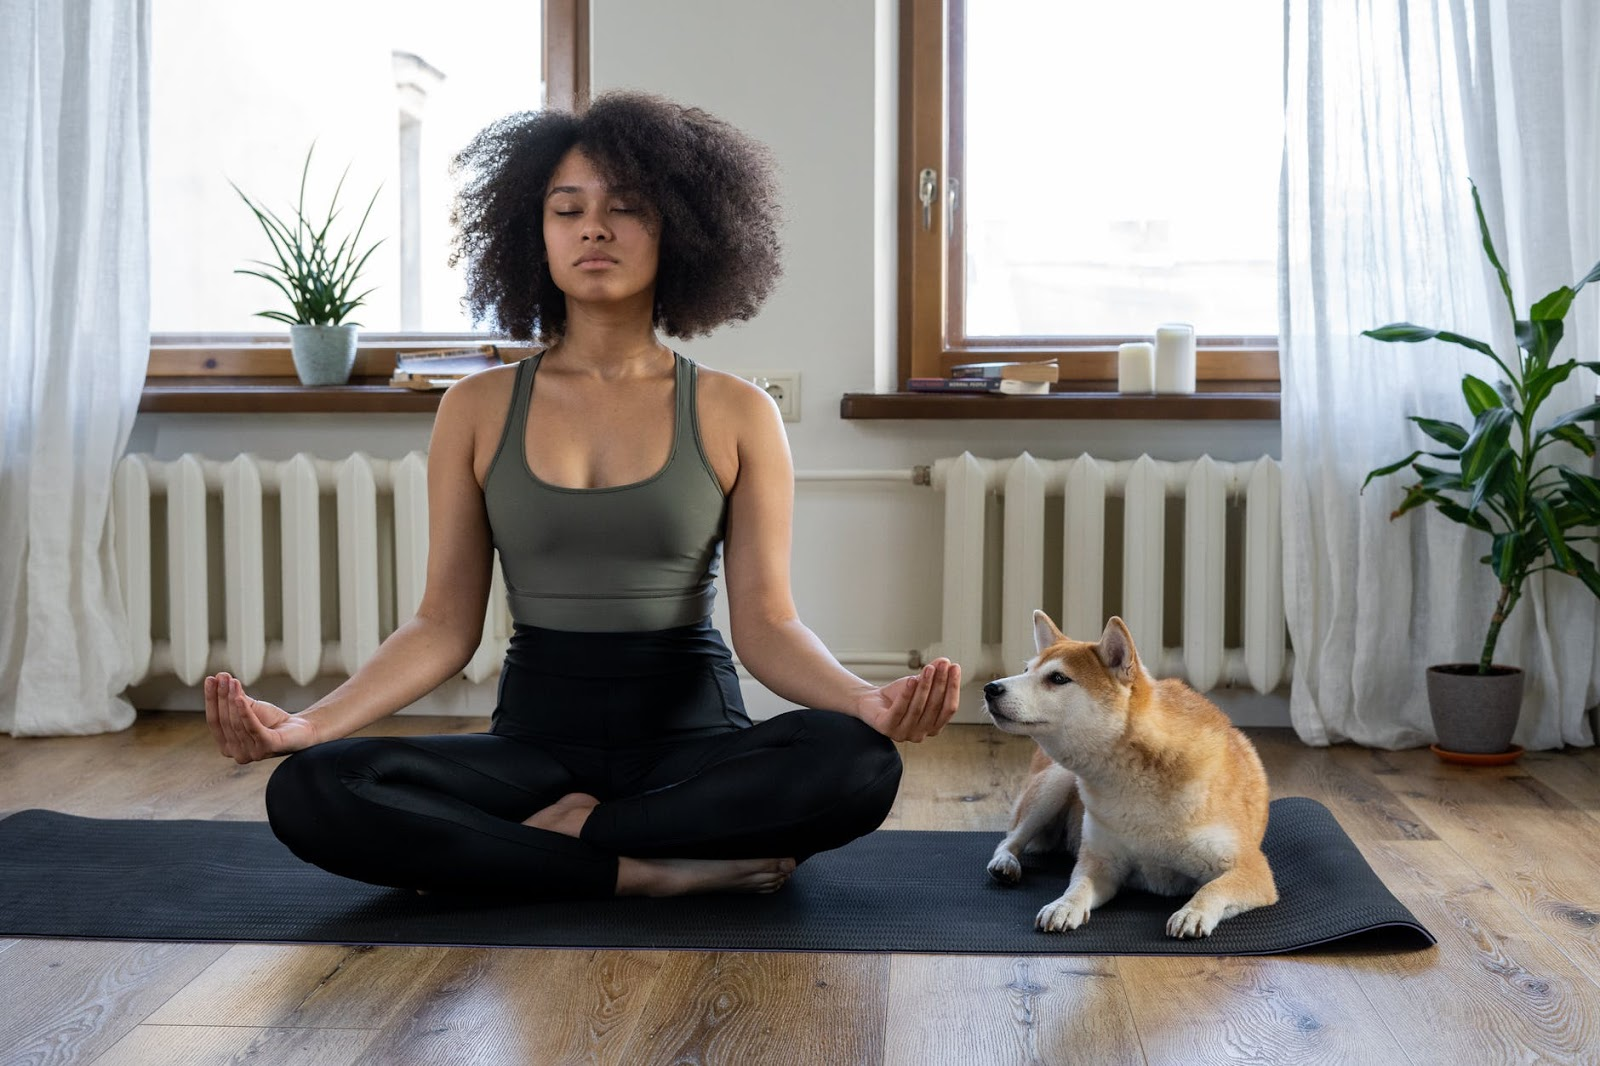 Meditation has been proven to help people destress since the dawn of time